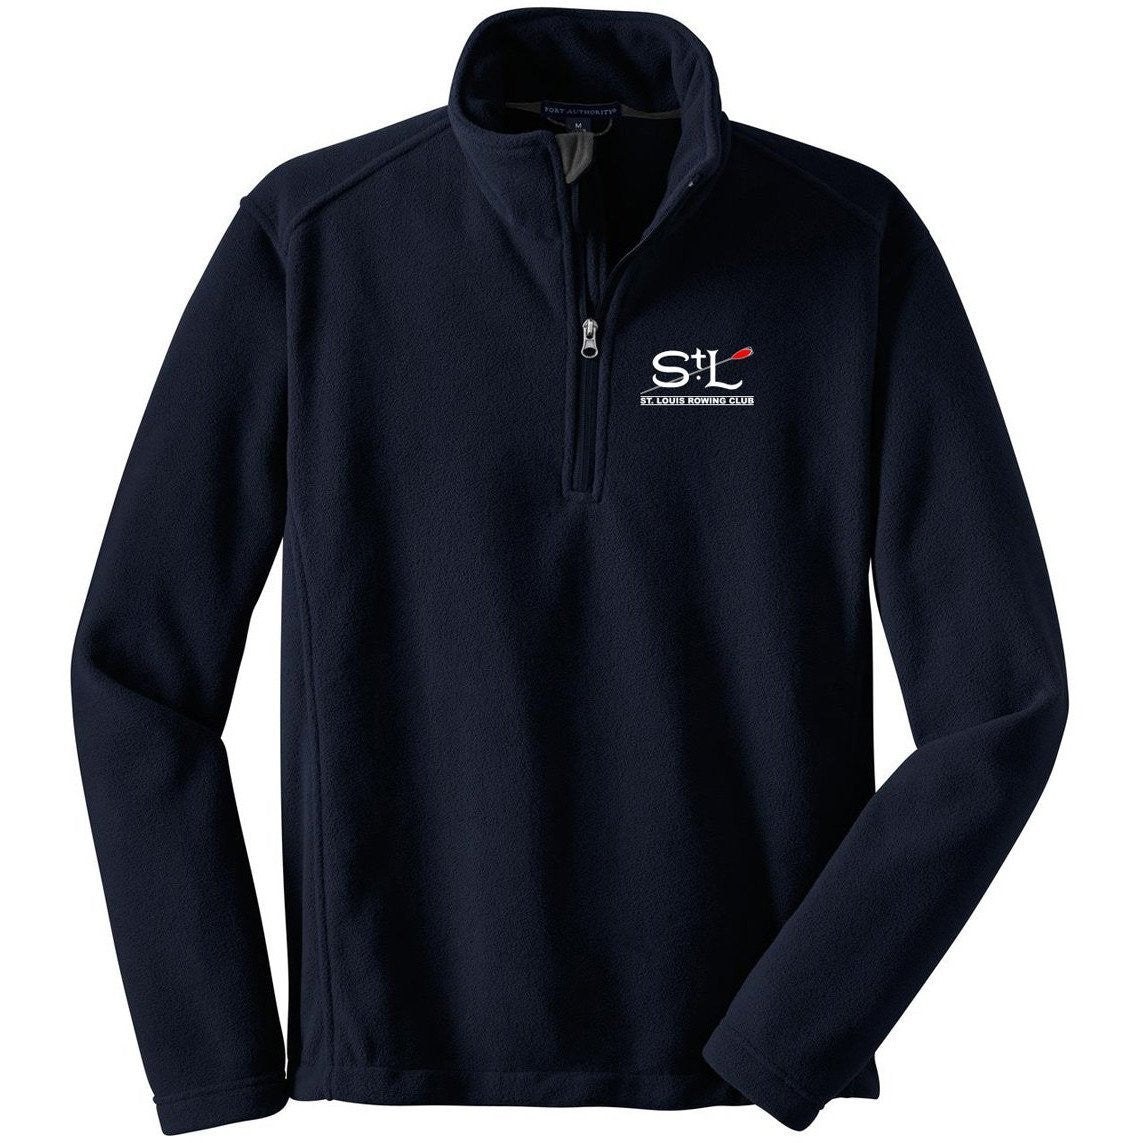 St. Louis Rowing Club 1/4 Zip  Fleece Pullover